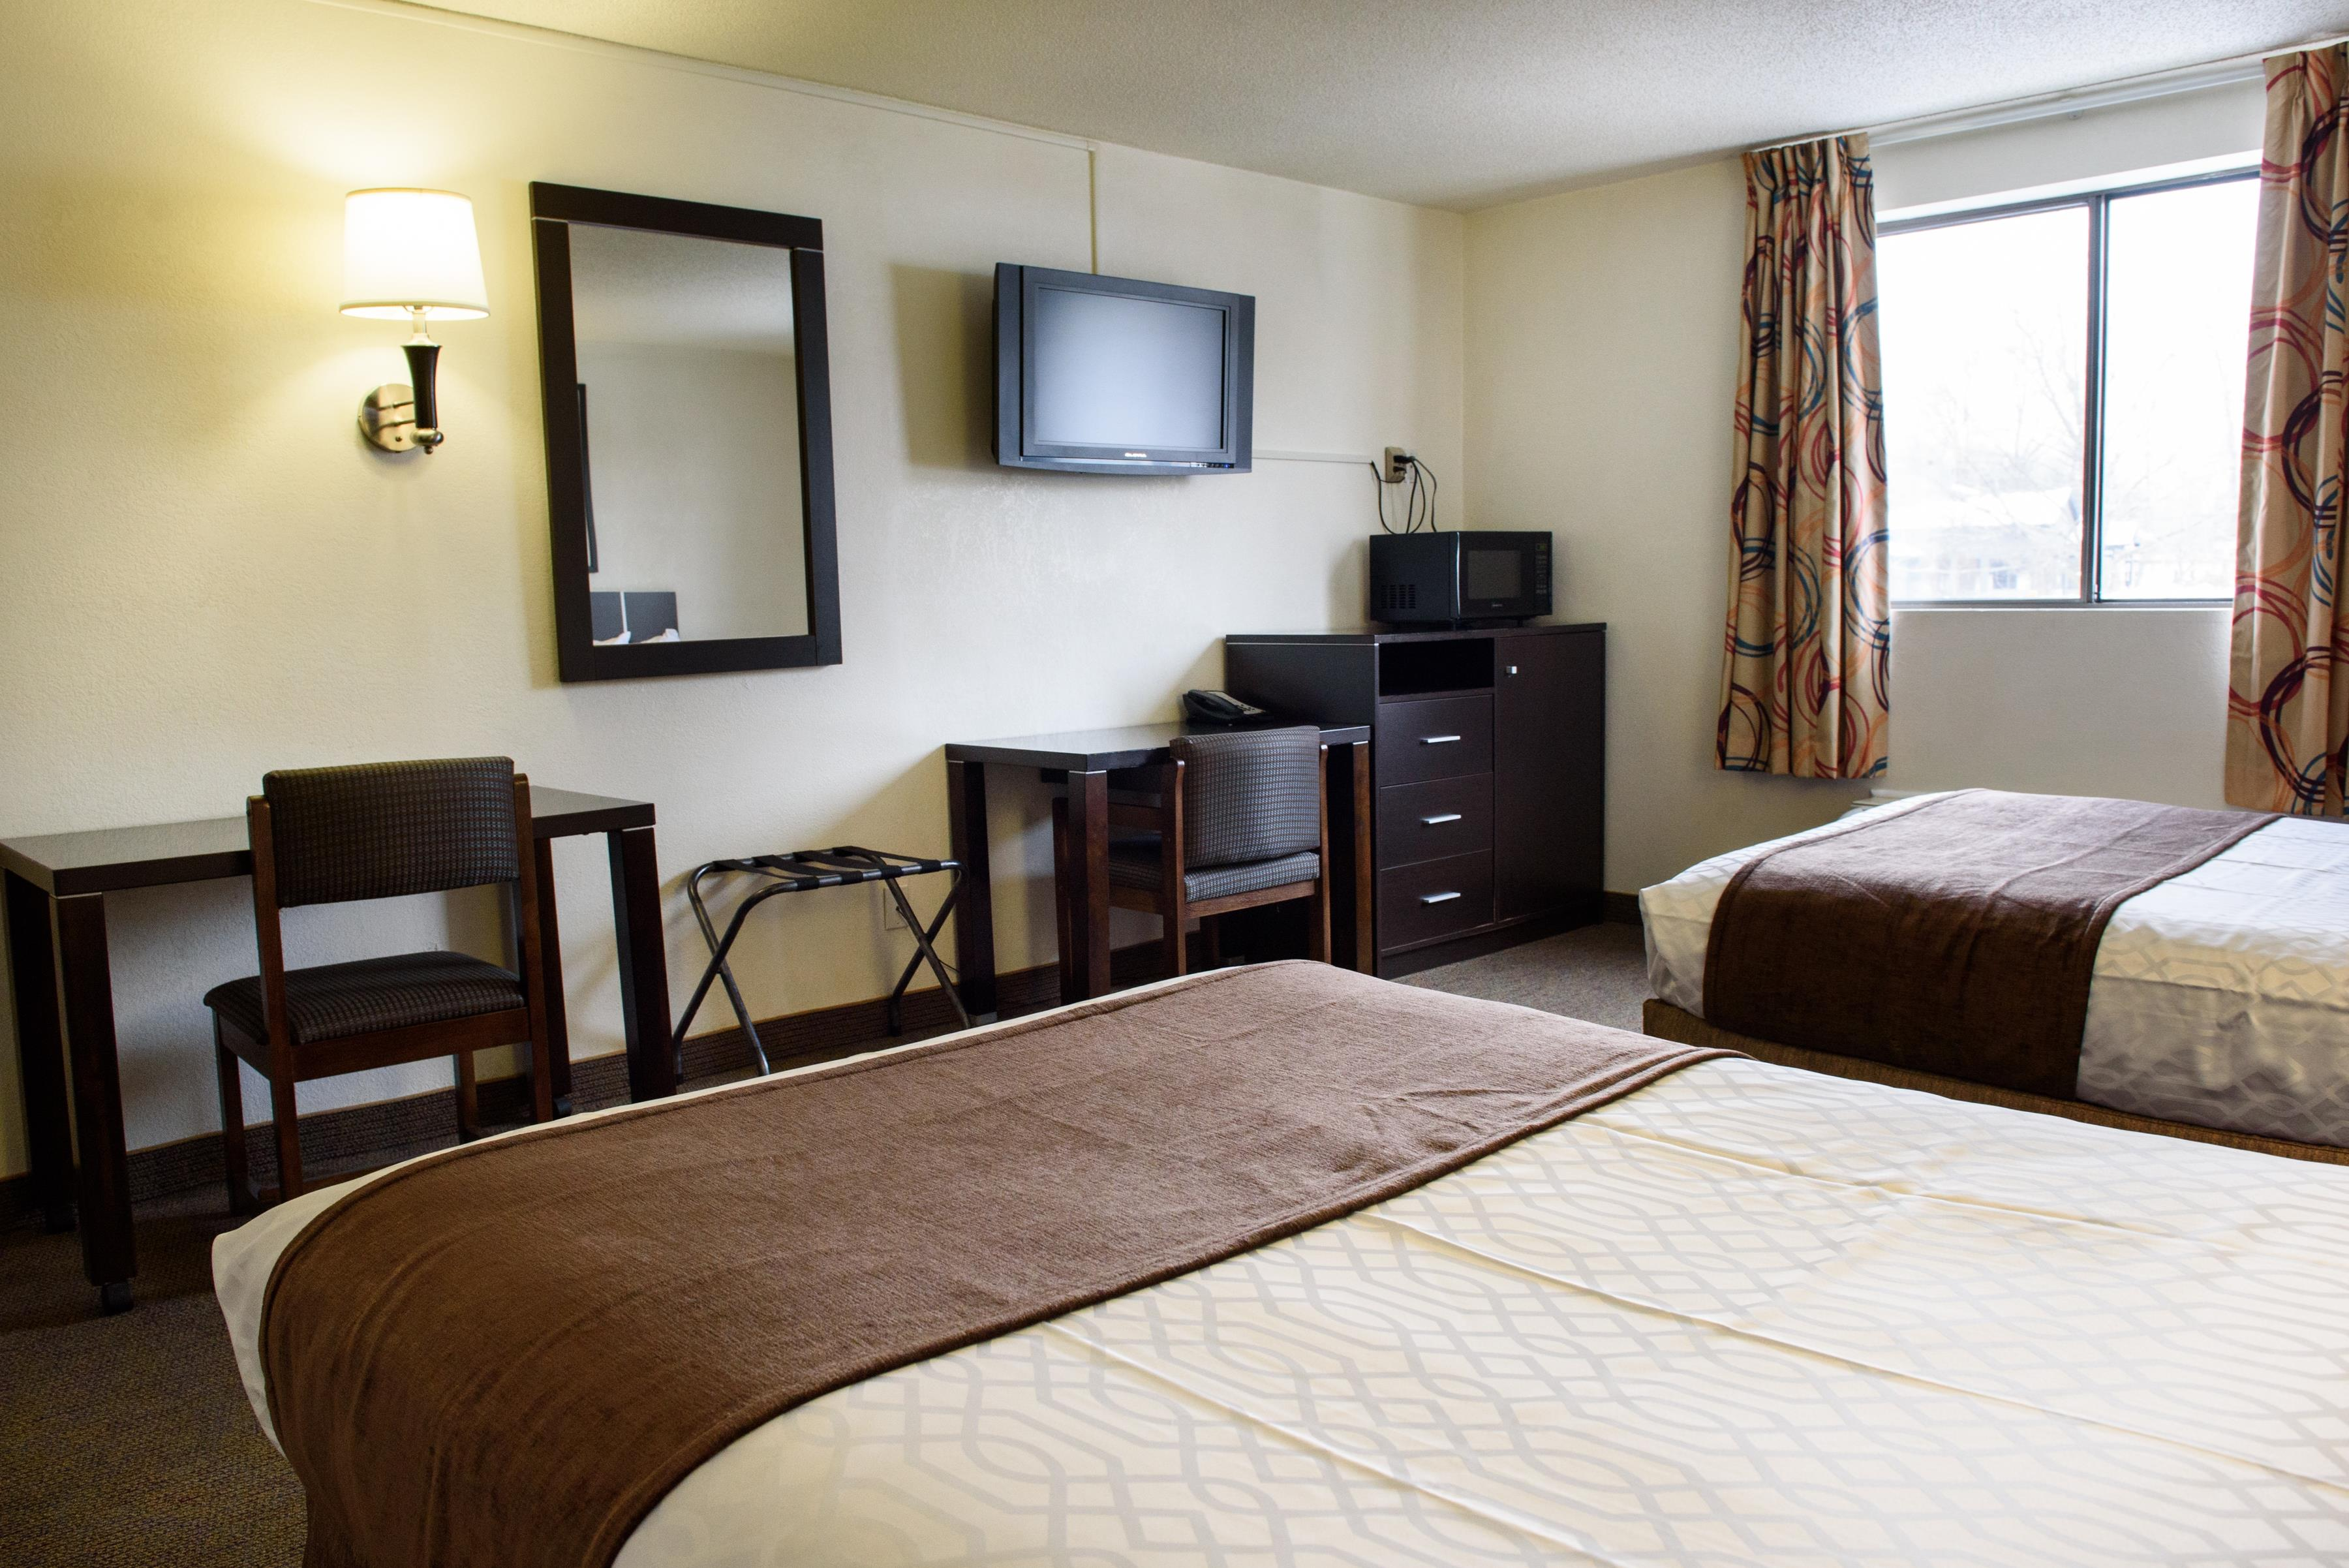 Americas Best Value Inn - New Paltz image 19